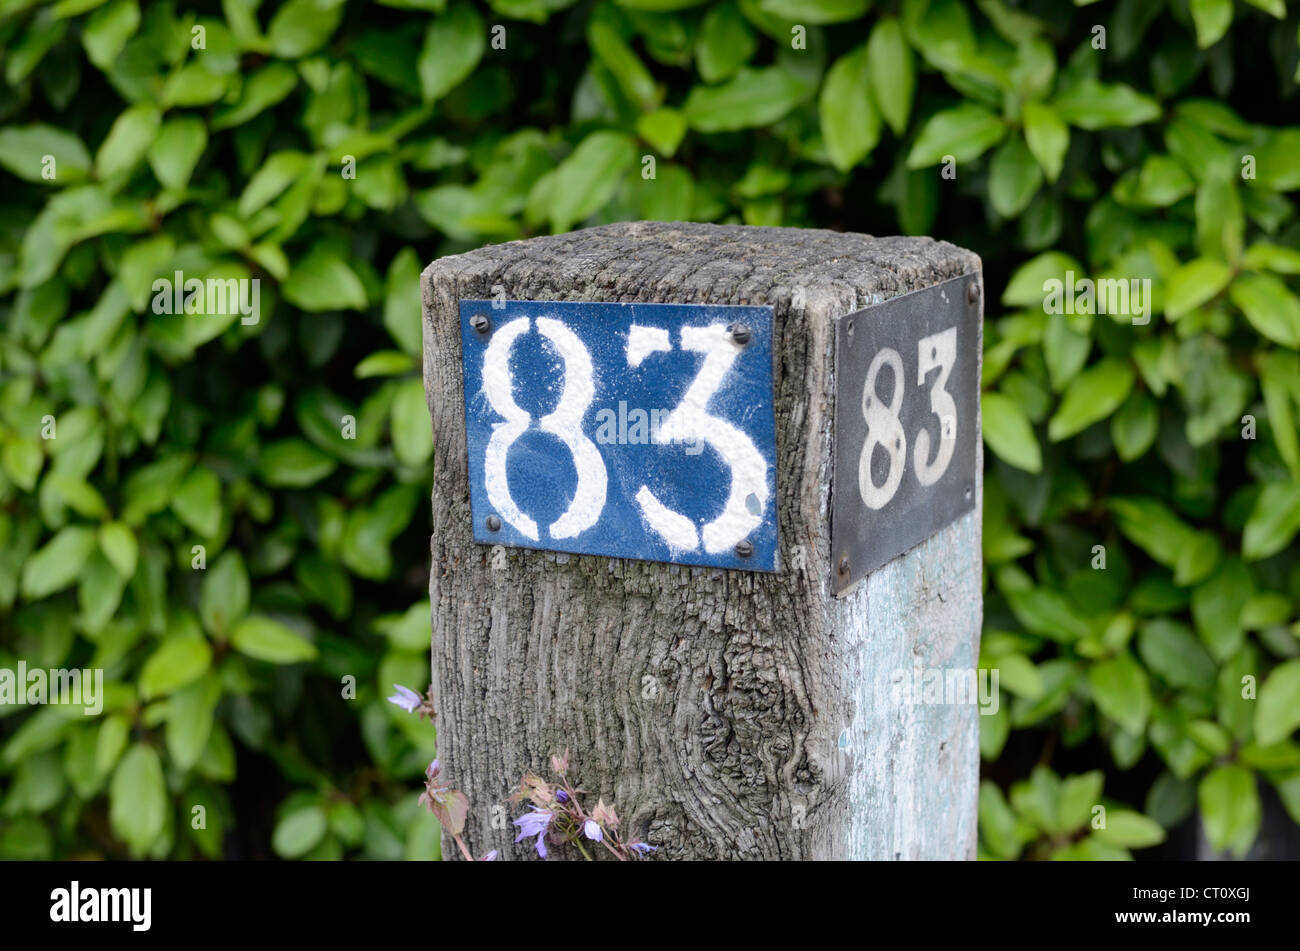 The number 83 on a gatepost - Stock Image